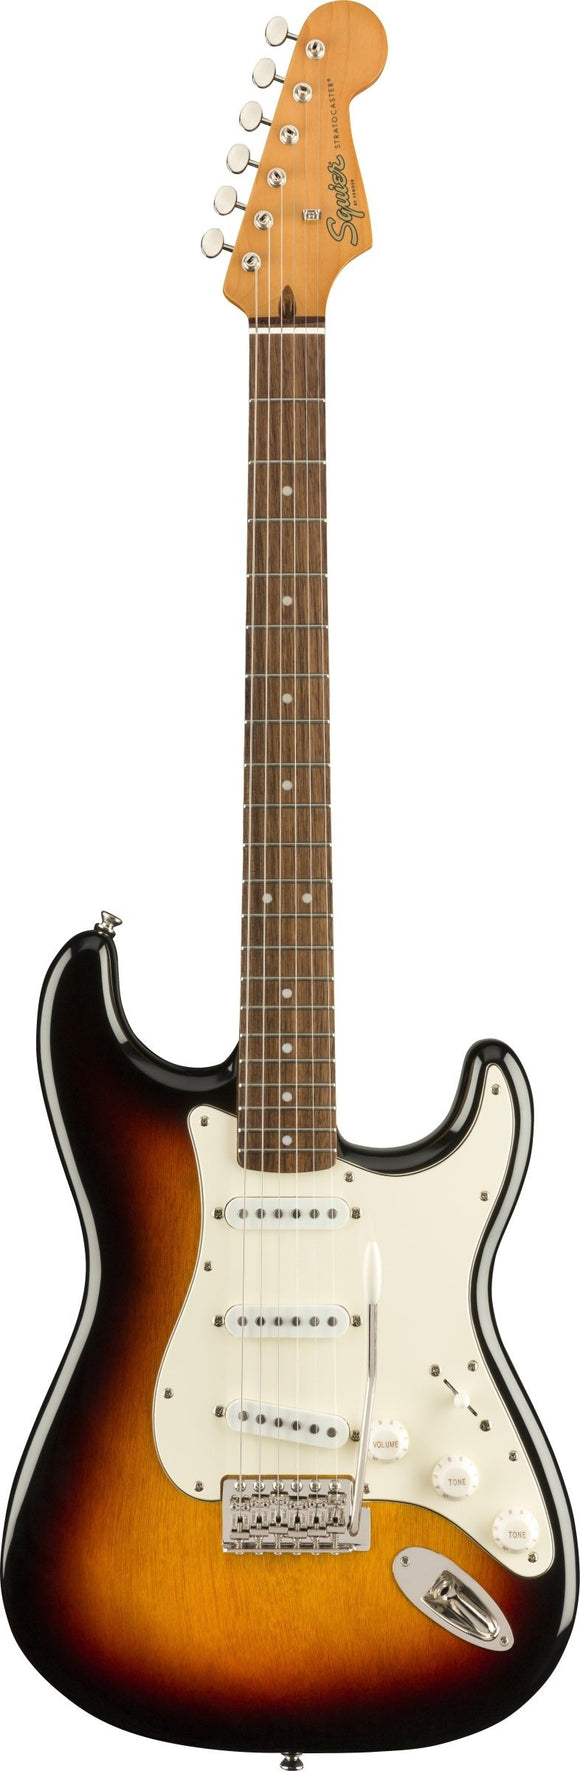 Fender Squier Clasic Vibe 60's Straotcaster